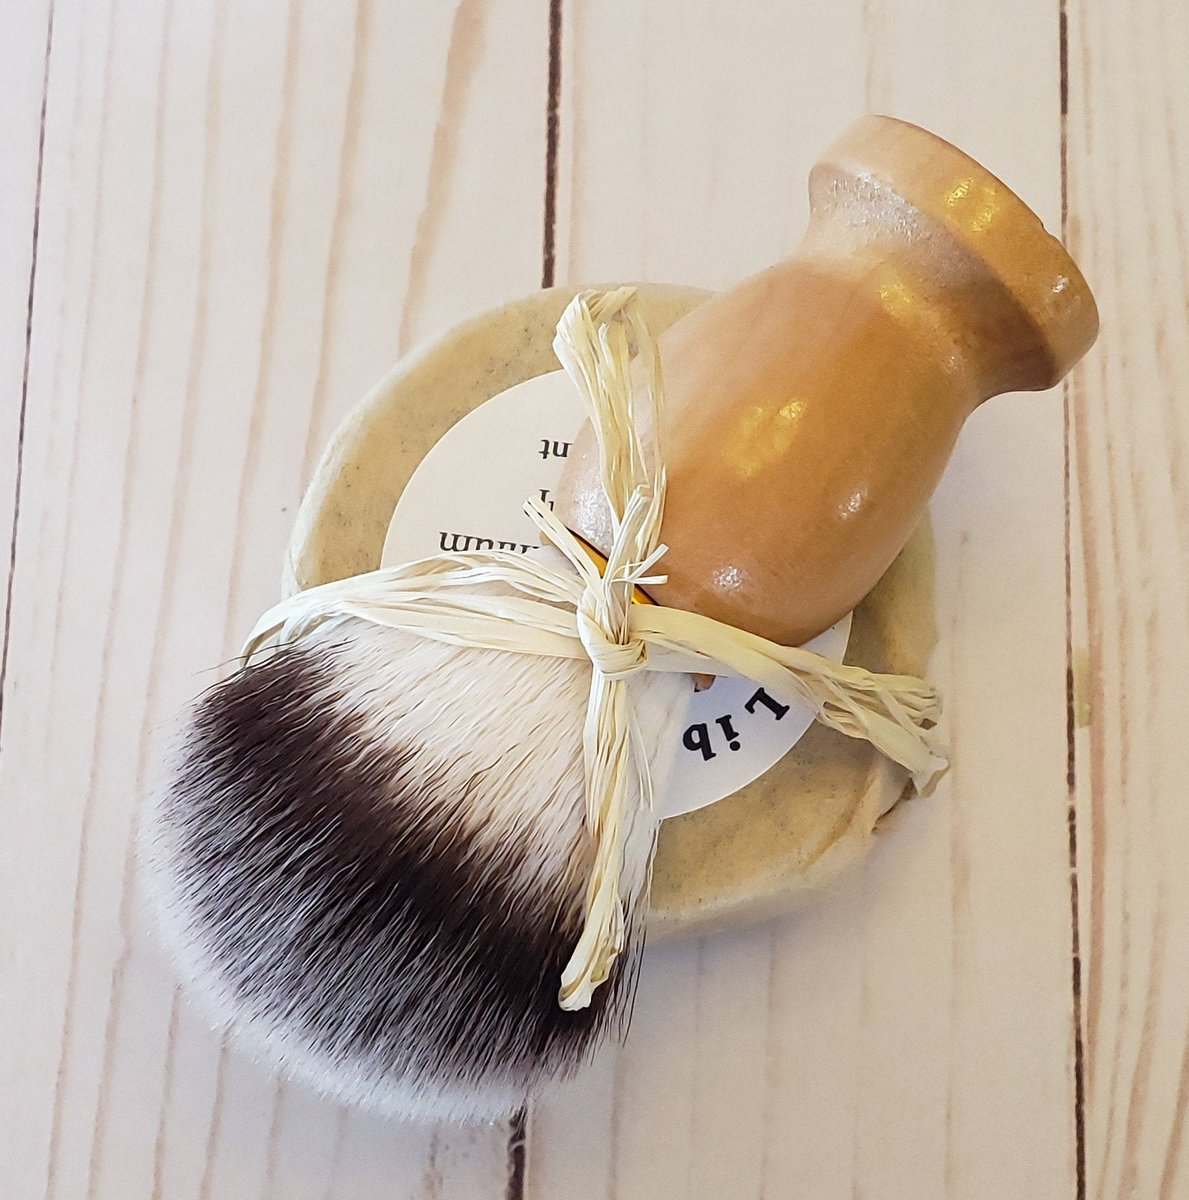 Shaving Soap With Natural Hair Brush Gift Set - Scents are Bay Rum, Shave and a Haircut, Rosemary Mint, Tobacco Bay and Unscented, Guy Gift http://tuppu.net/17600345 #facialcare #skincare #Etsy #allnatural #coldprocesssoap #LibertyBathAndBody #ShavingSoap pic.twitter.com/hGsb7DWNwk